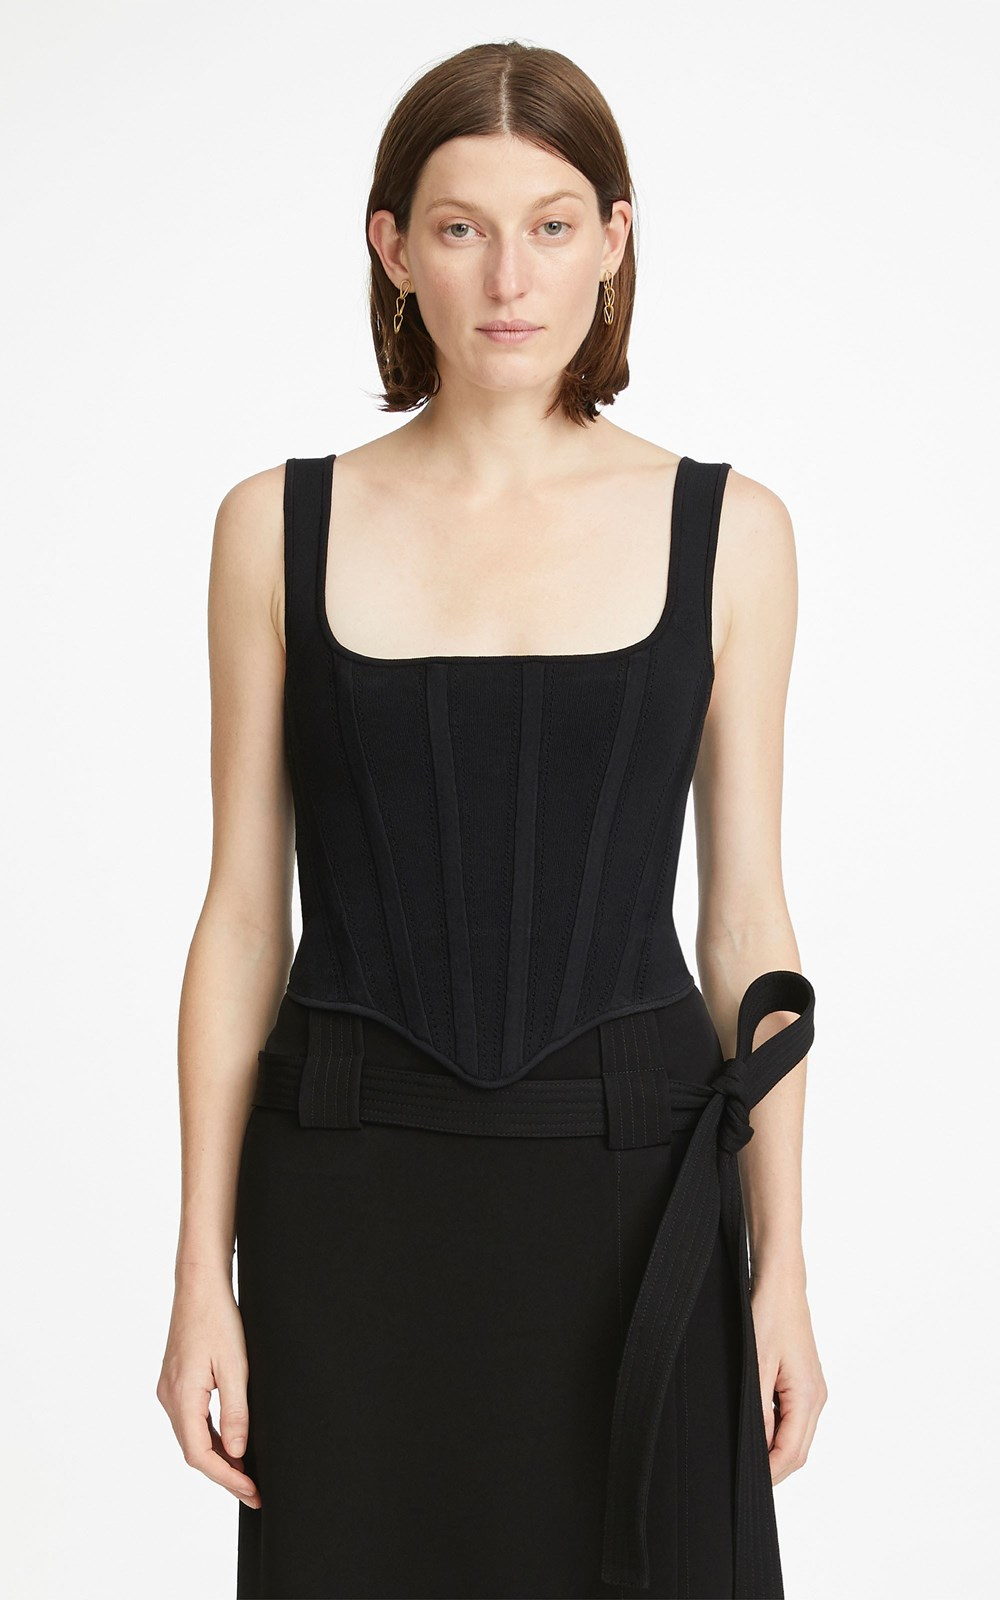 Knitwear | POINTELLE CORSET TOP